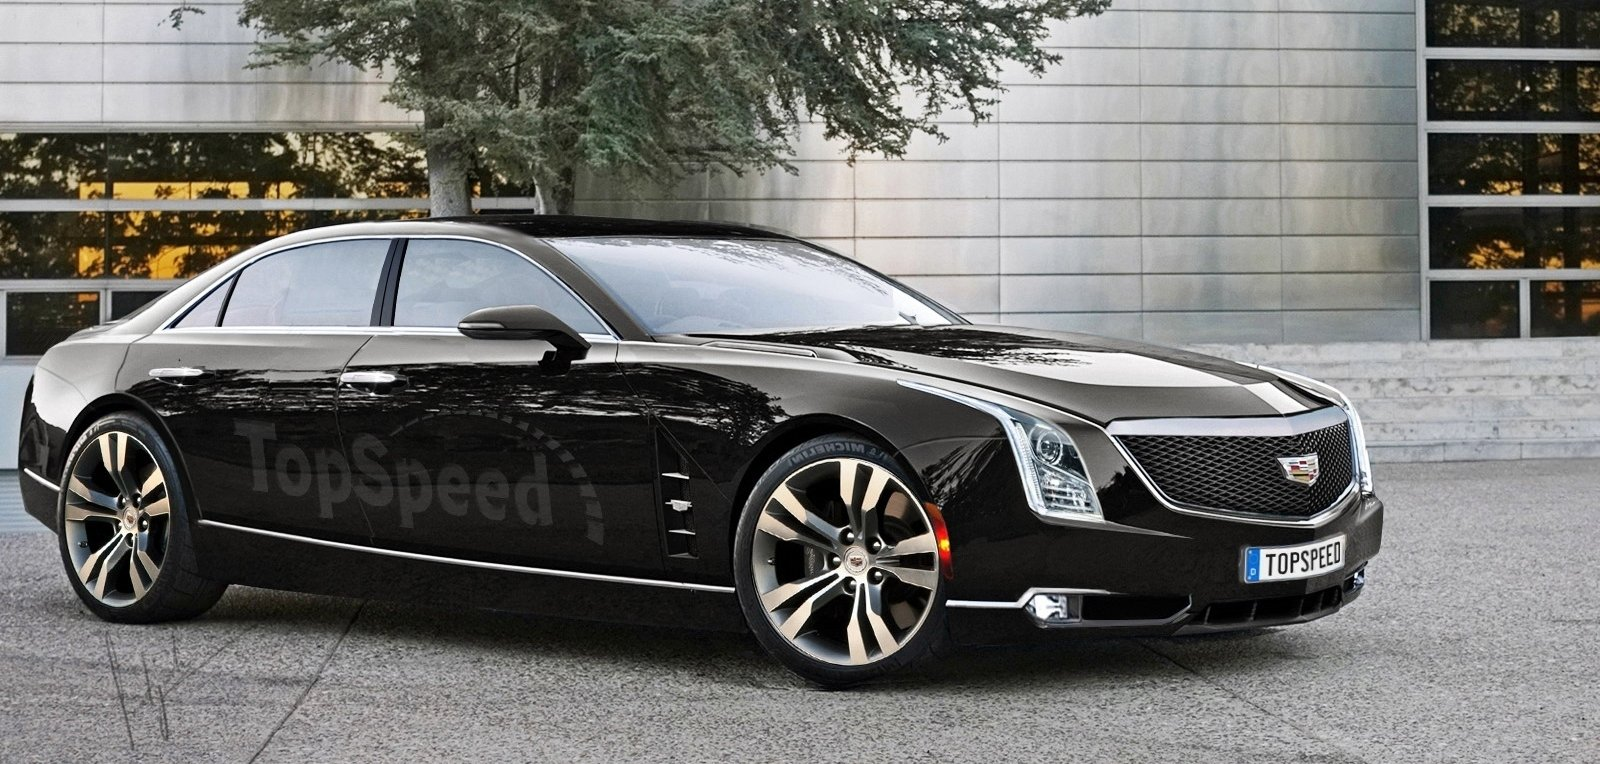 Cadillac Has Big Plans Between Now And 2020 | Top Speed